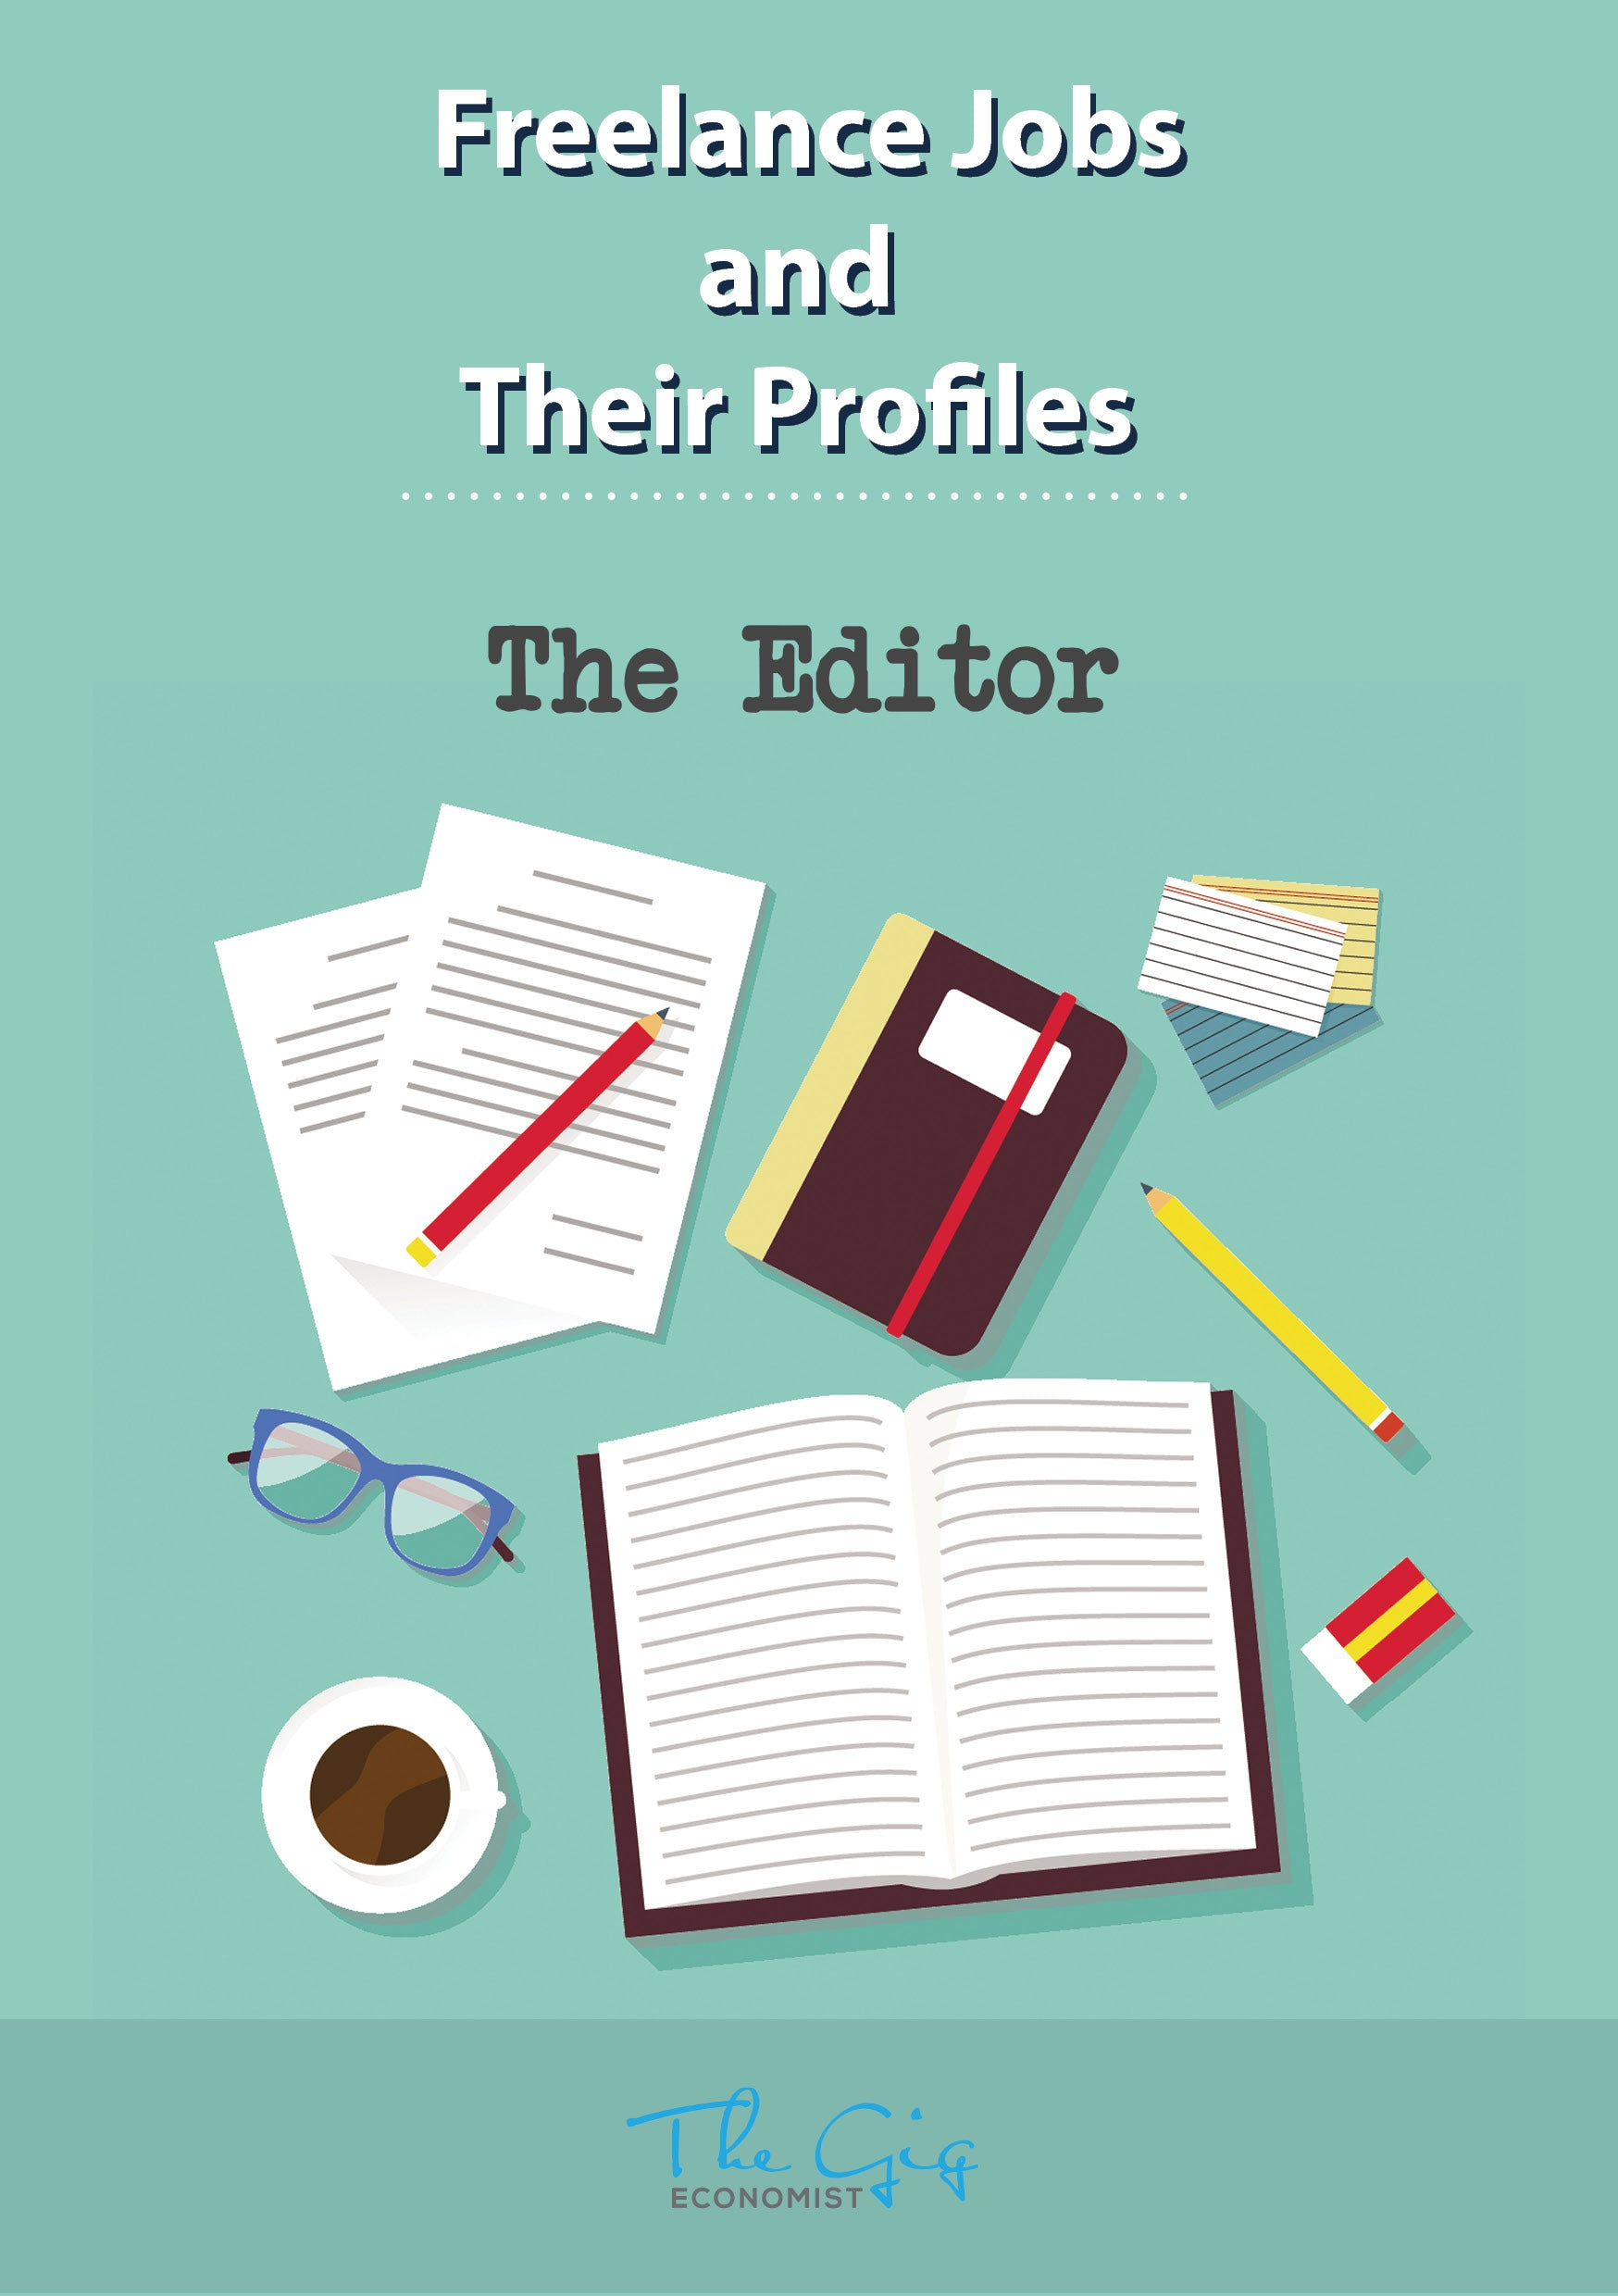 Freelance Editor Job Profile | The Gig Economist